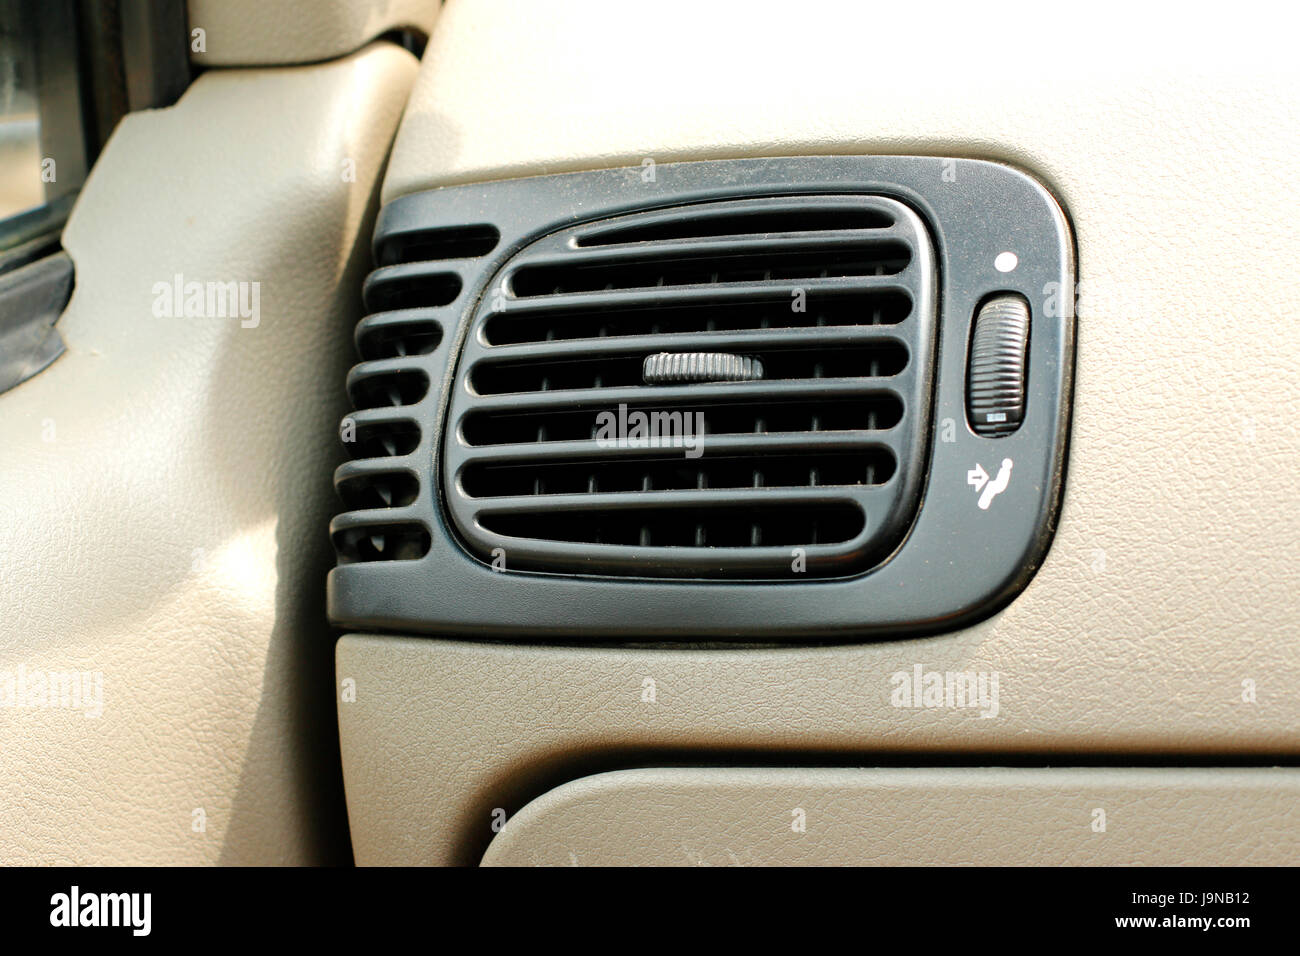 Ordinary car Air Conditioner in light colored interior - Stock Image